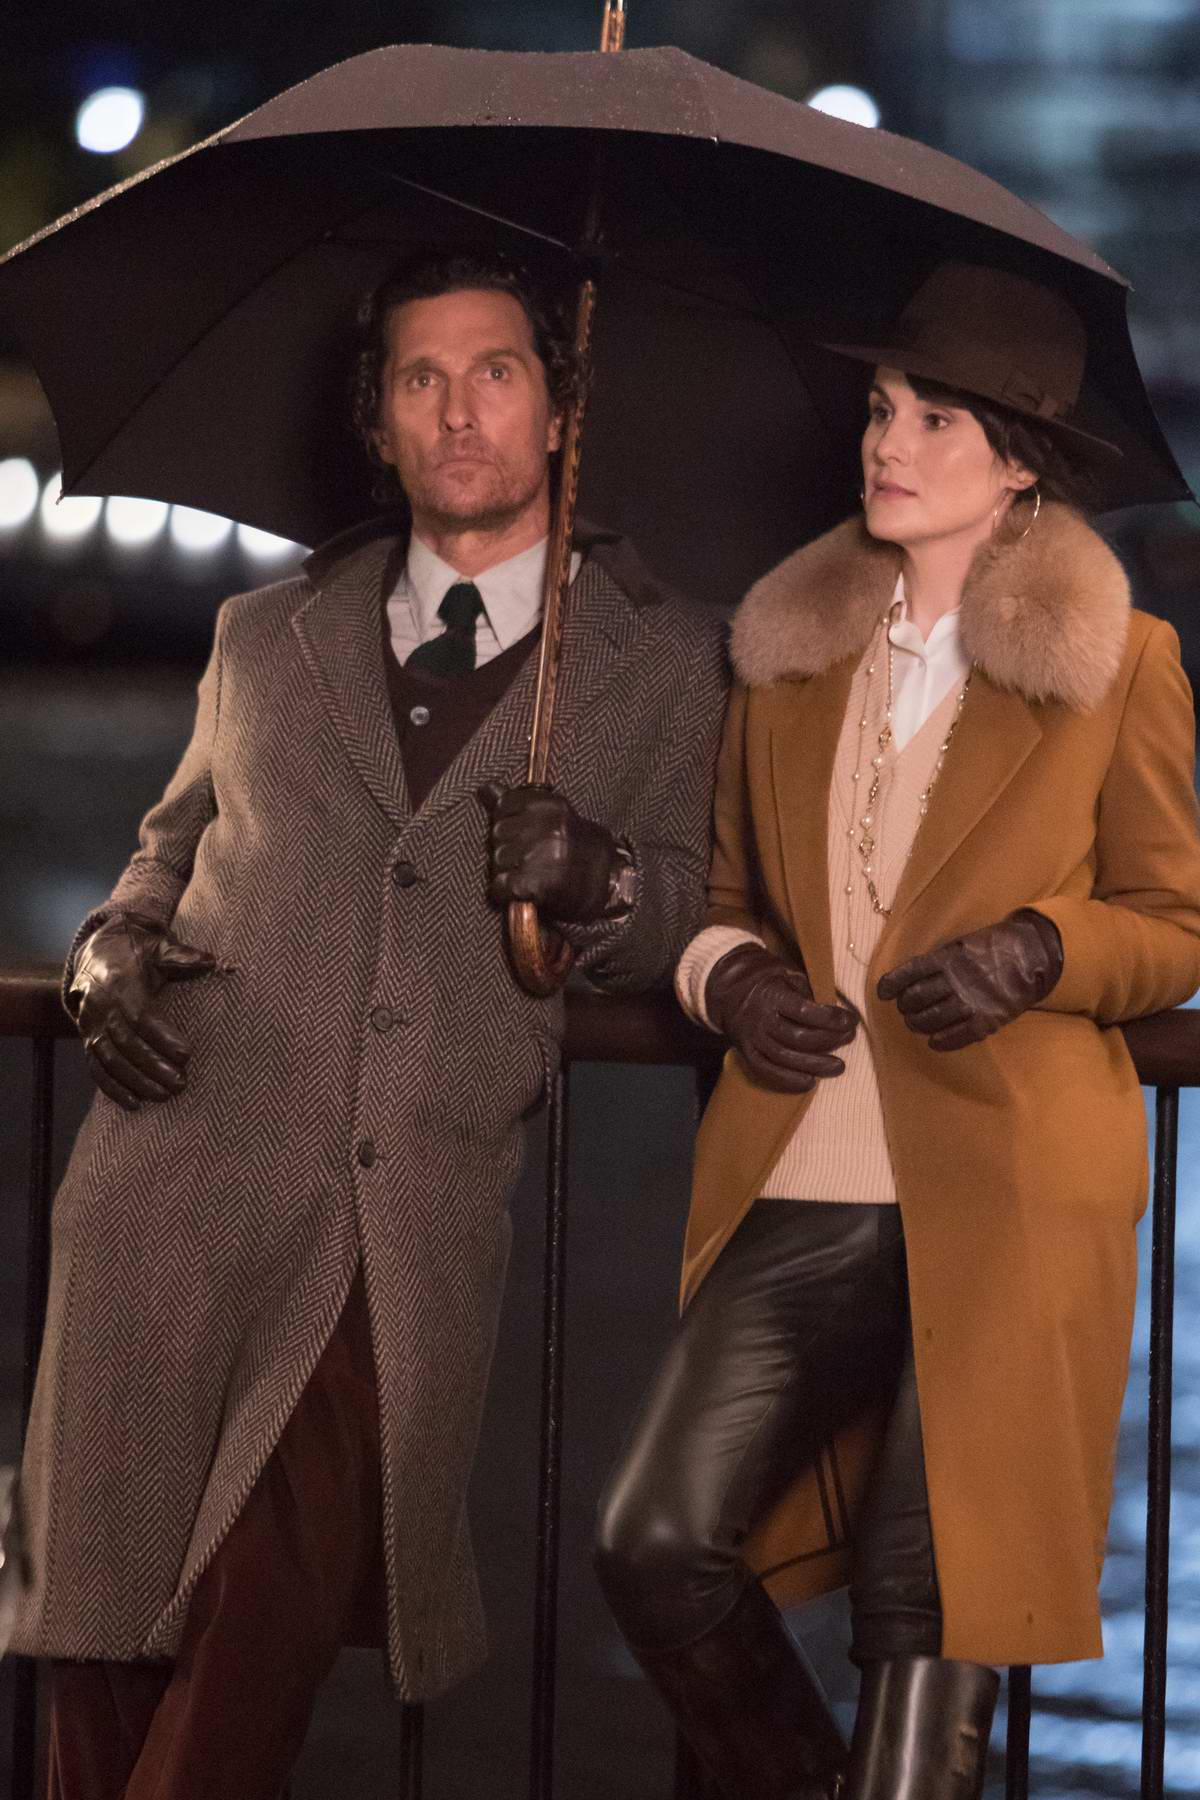 Michelle Dockery and Matthew McConaughey spotted while filming scenes for their upcoming movie 'Toff guys' in Southbank, London, UK